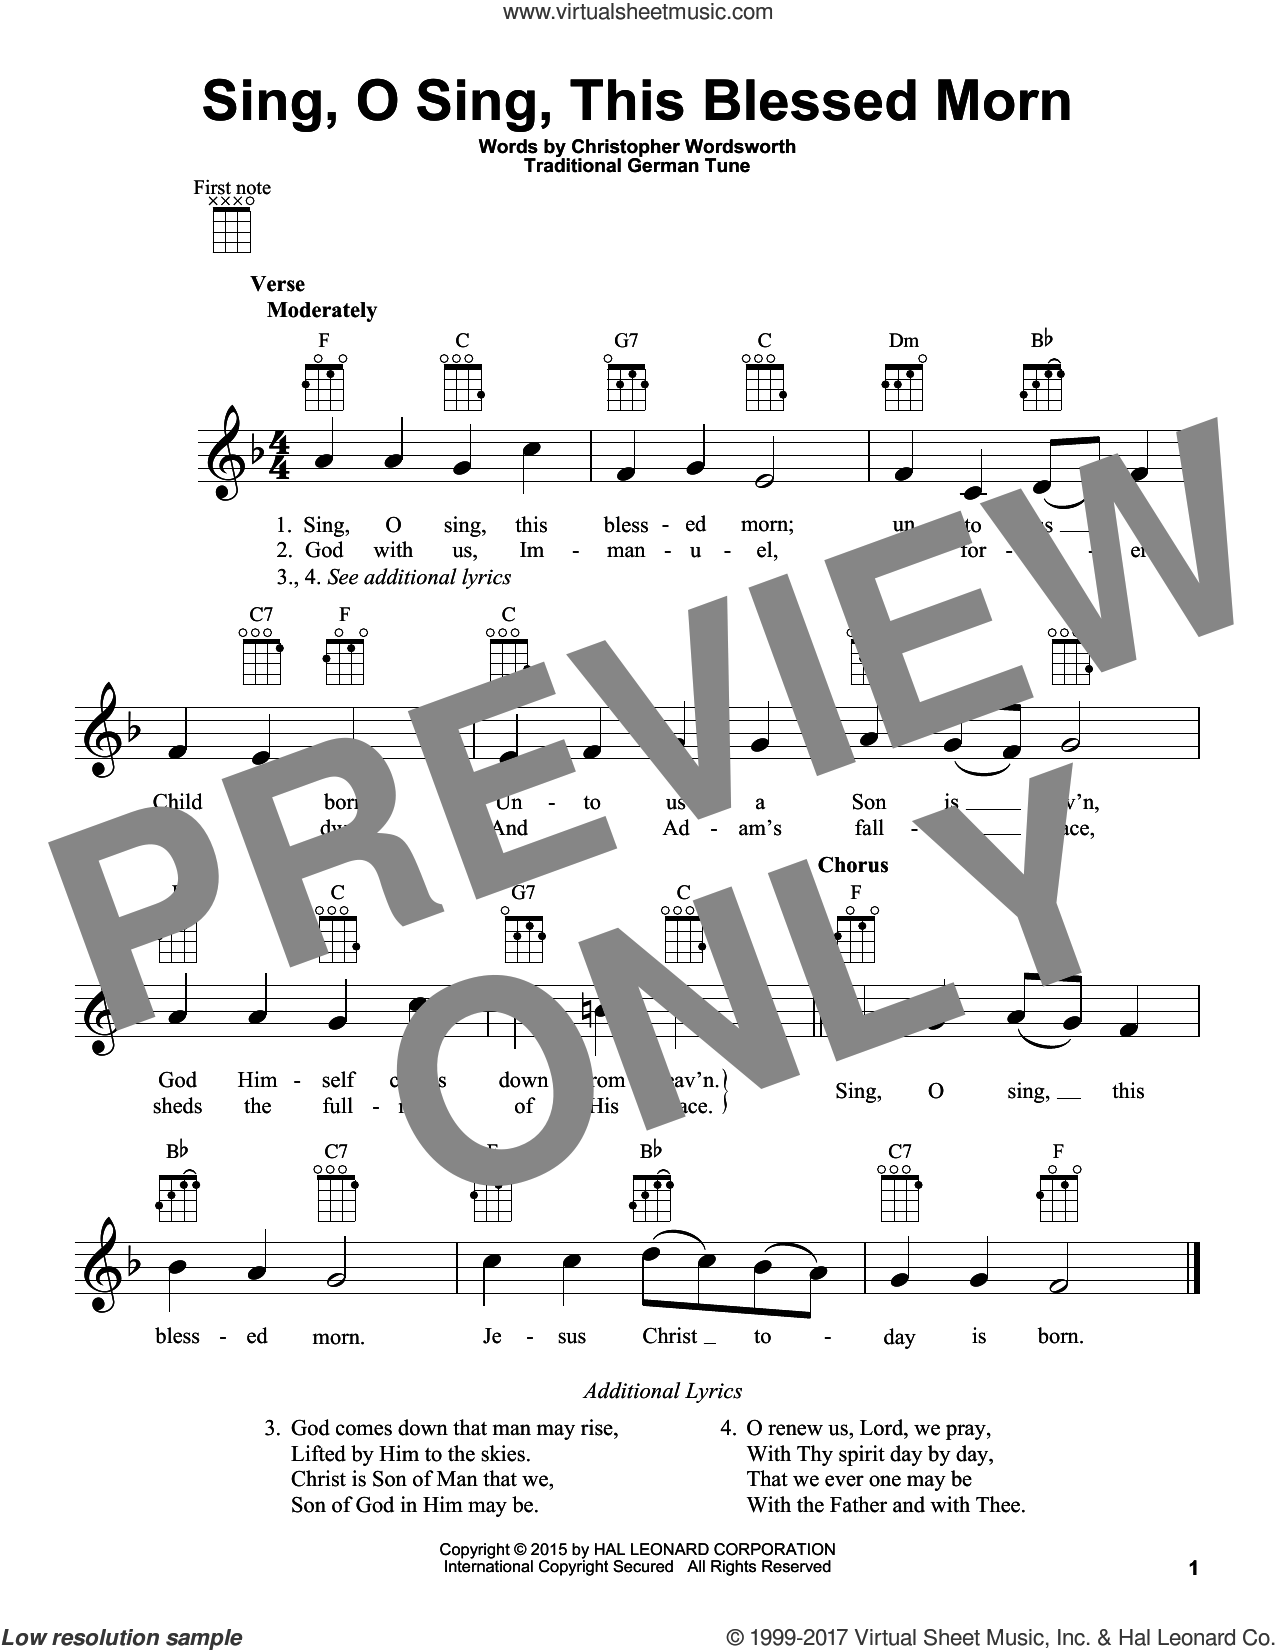 Sing, O Sing, This Blessed Morn sheet music for ukulele by Christopher Wordsworth and Miscellaneous, Christmas carol score, intermediate ukulele. Score Image Preview.